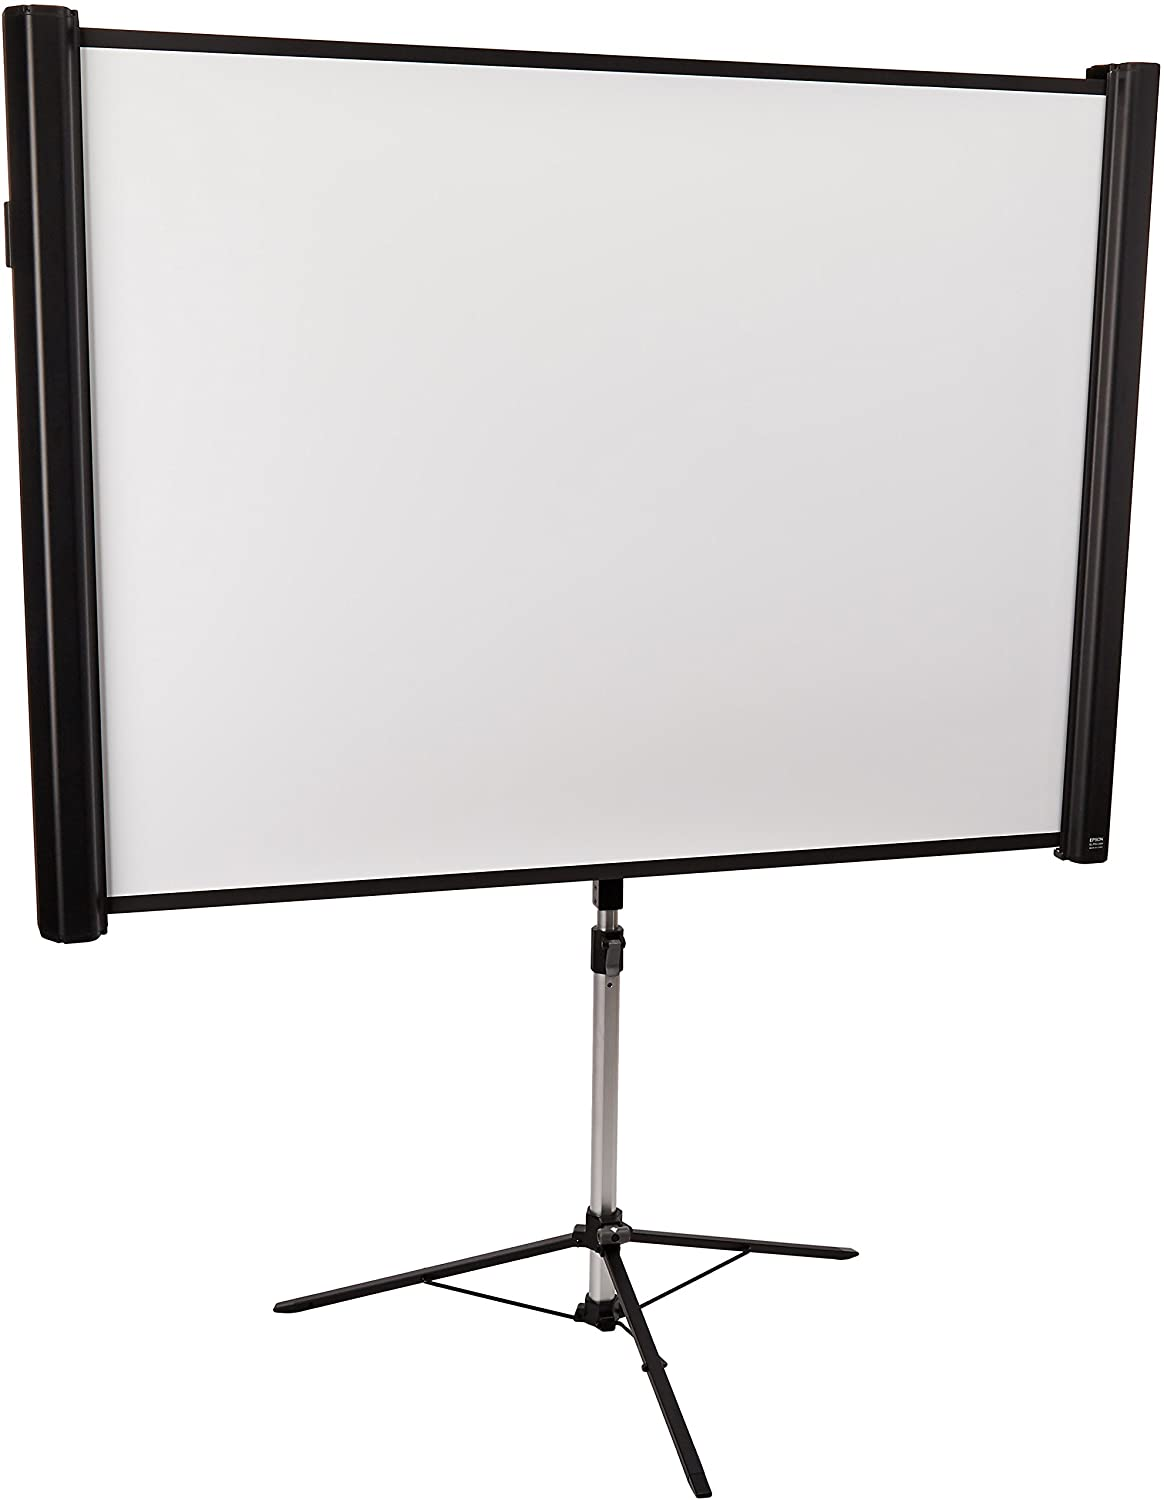 Epson ES3000 Ultra Portable Projection Screen (V12H002S3Y),Black/White